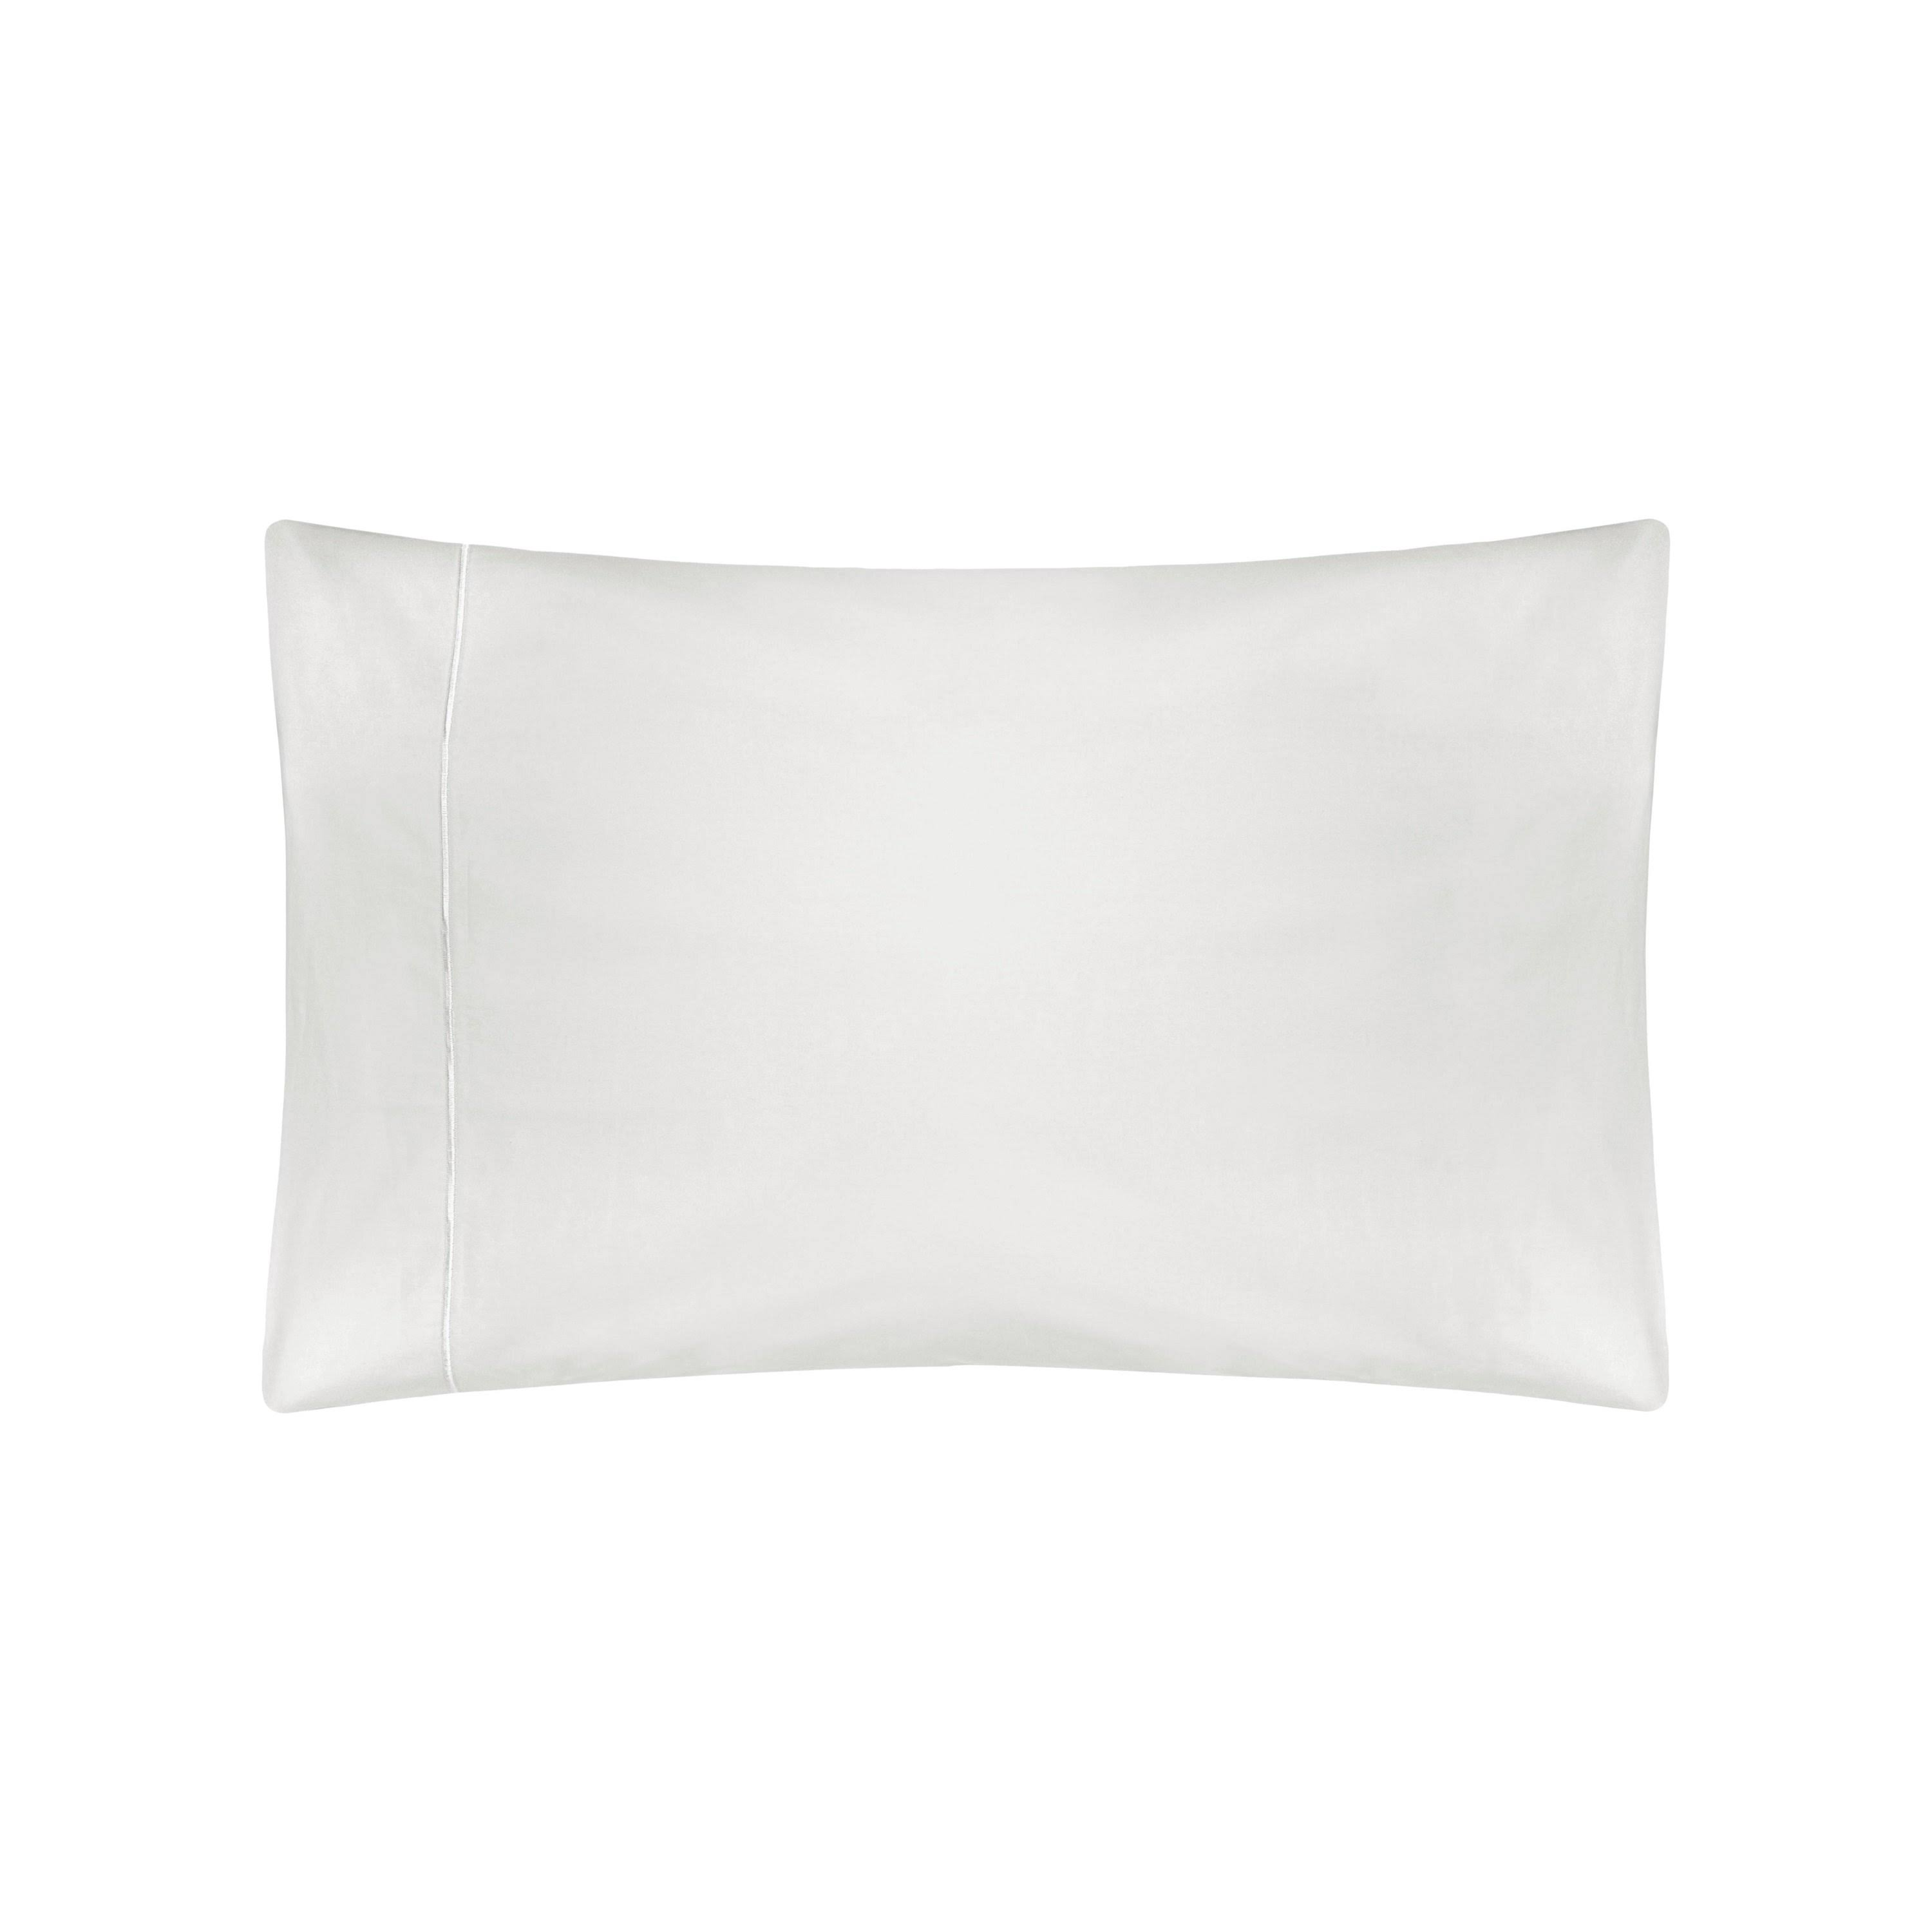 Belledorm 400 Count Egyptian Cotton Pillowcase - Ivory - Housewife